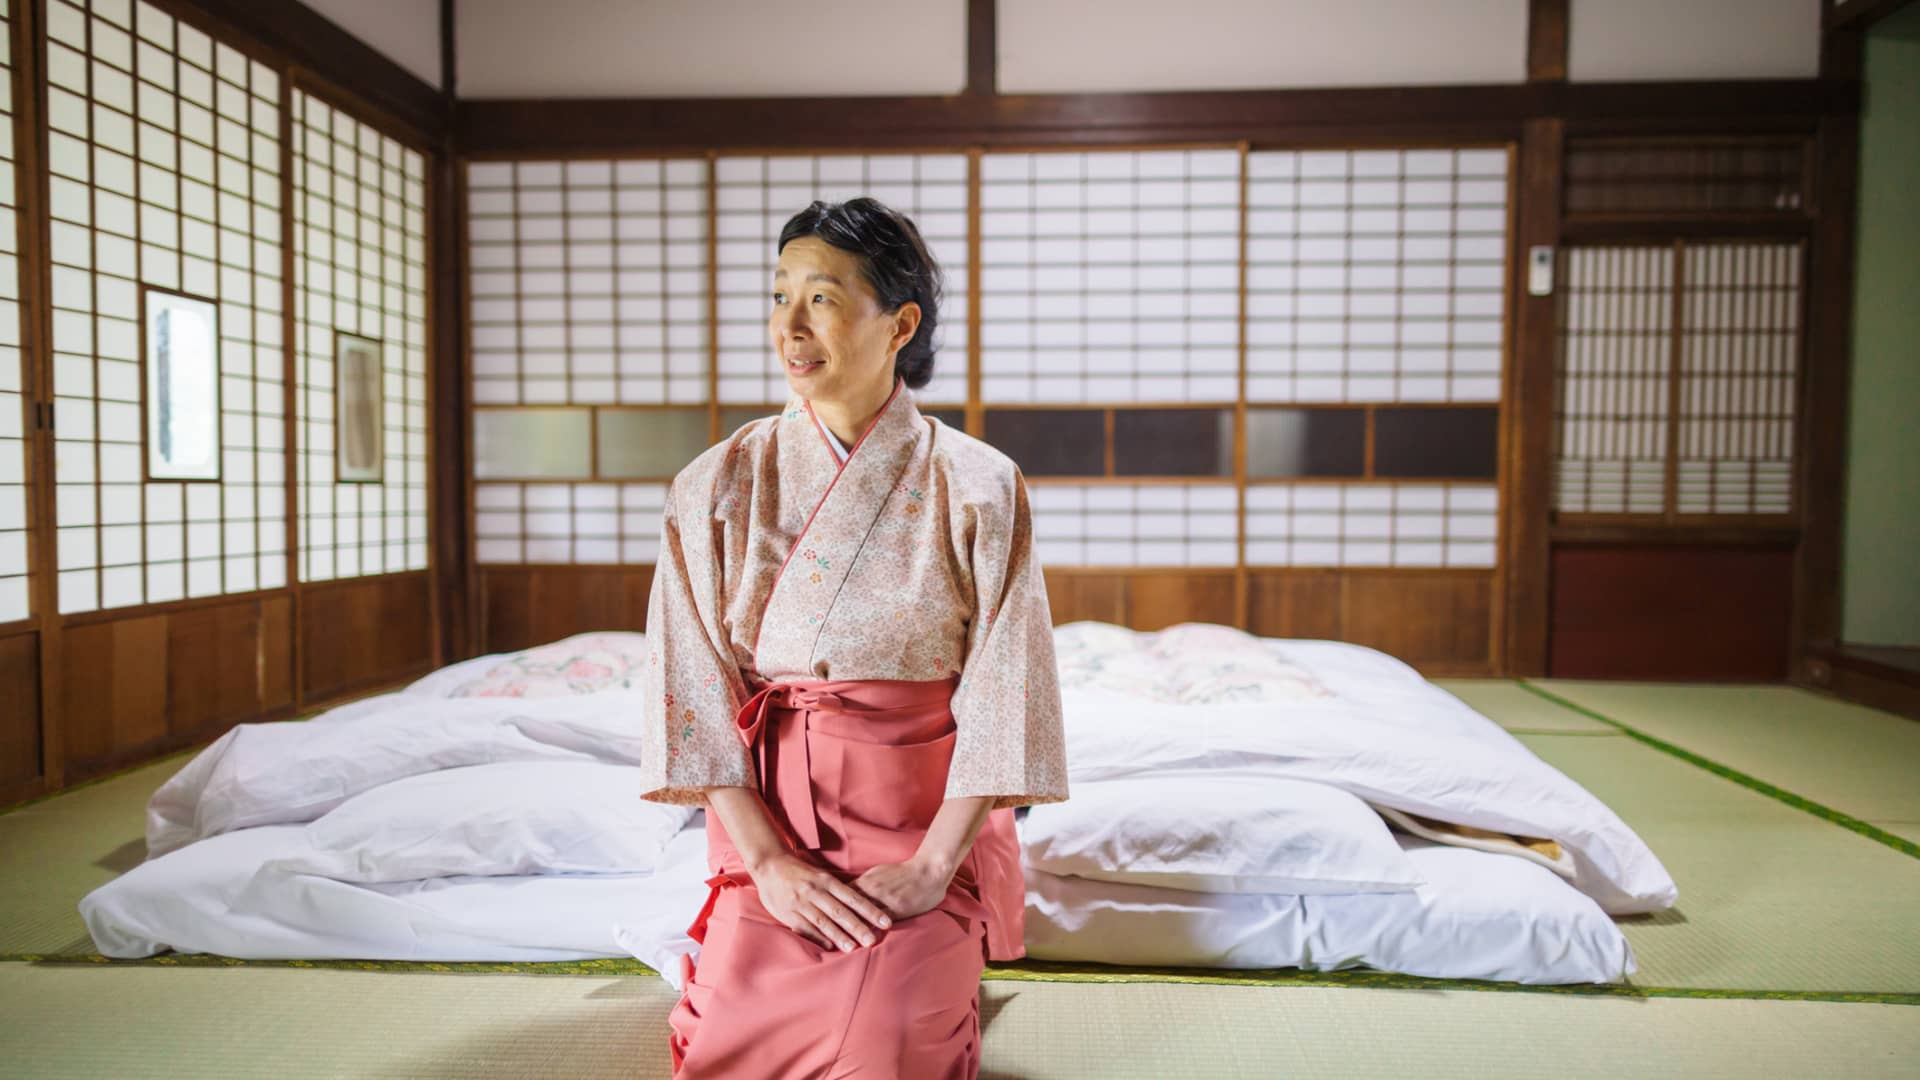 Ryokan prices are often quoted per person, not per night.